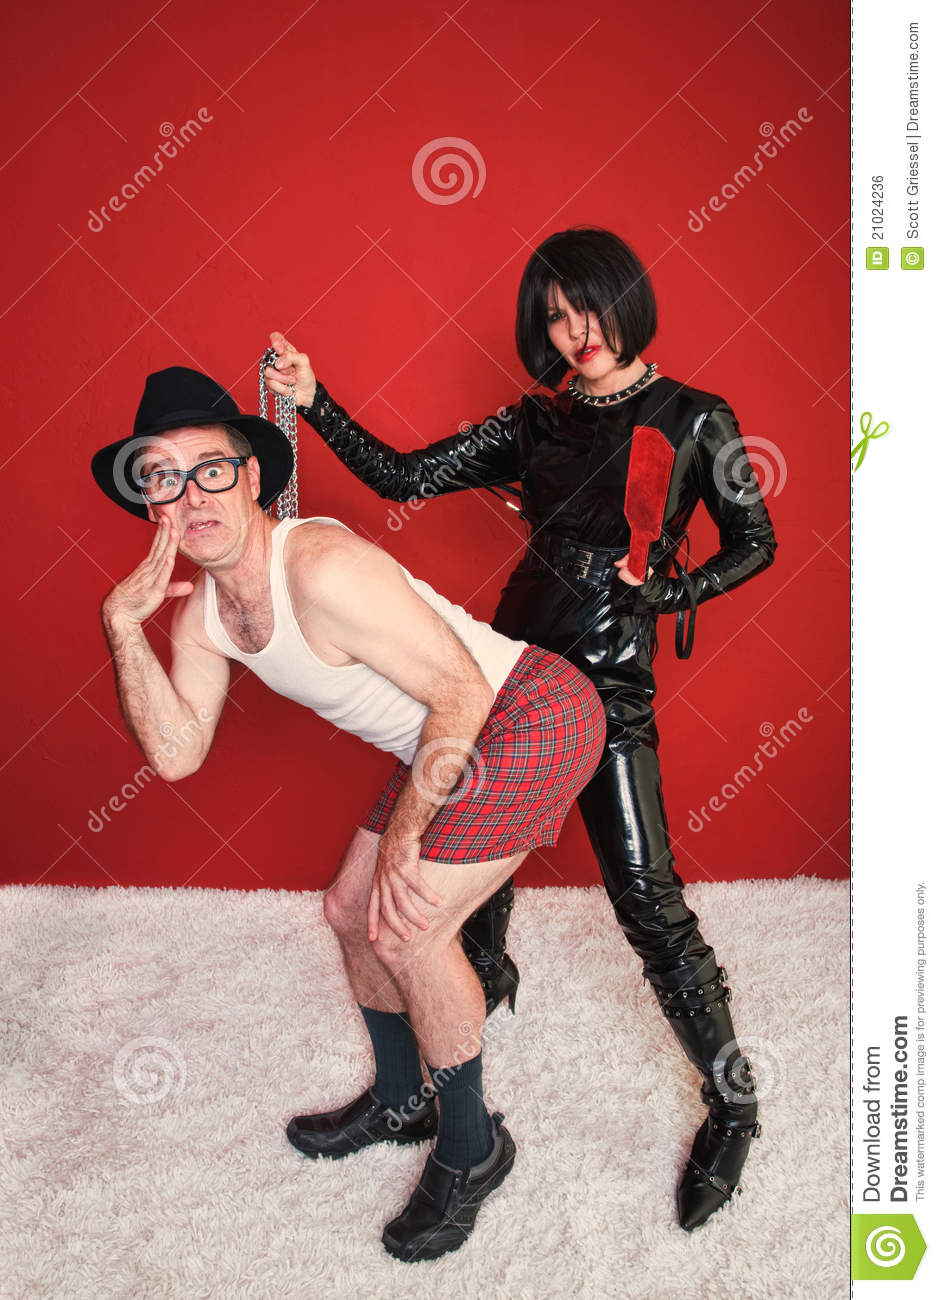 Dominatrix with Chains and Man